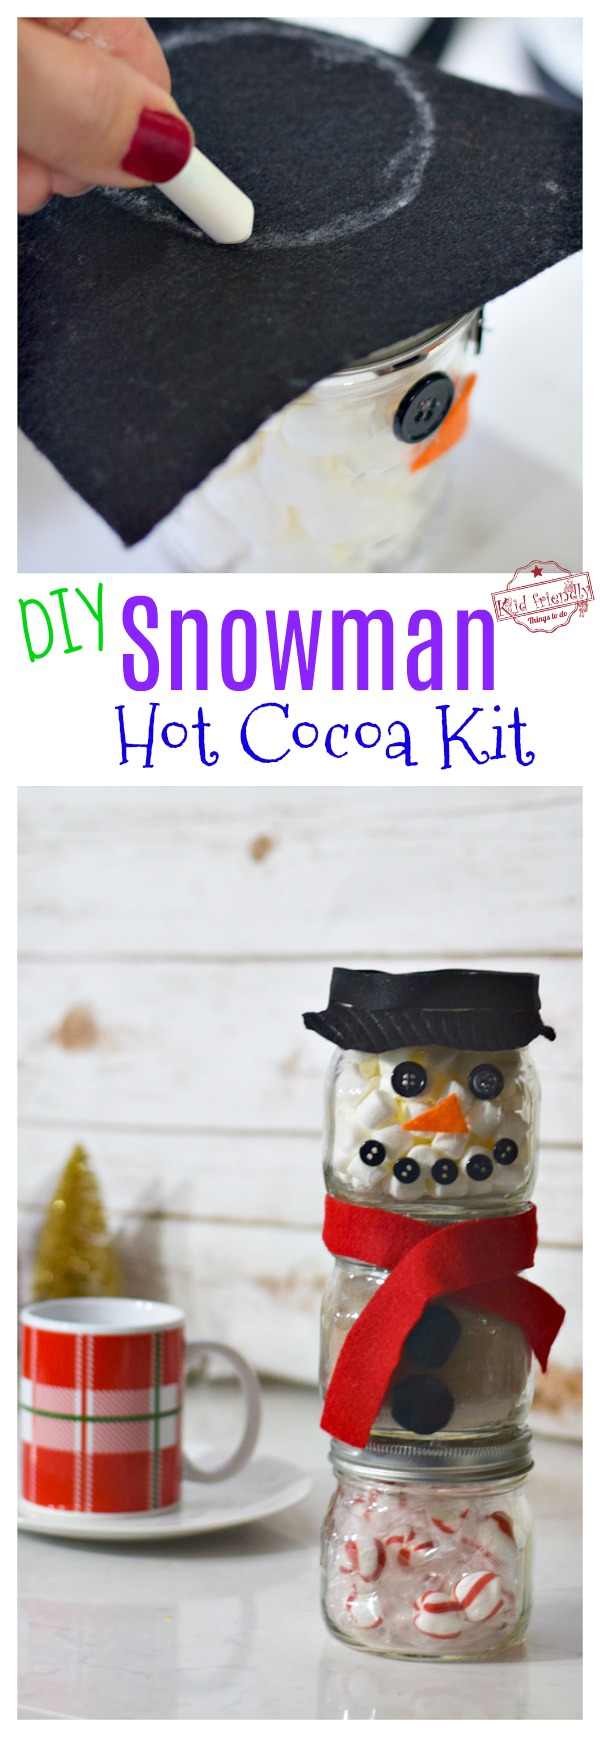 easy snowman hot chocolate kit with jars